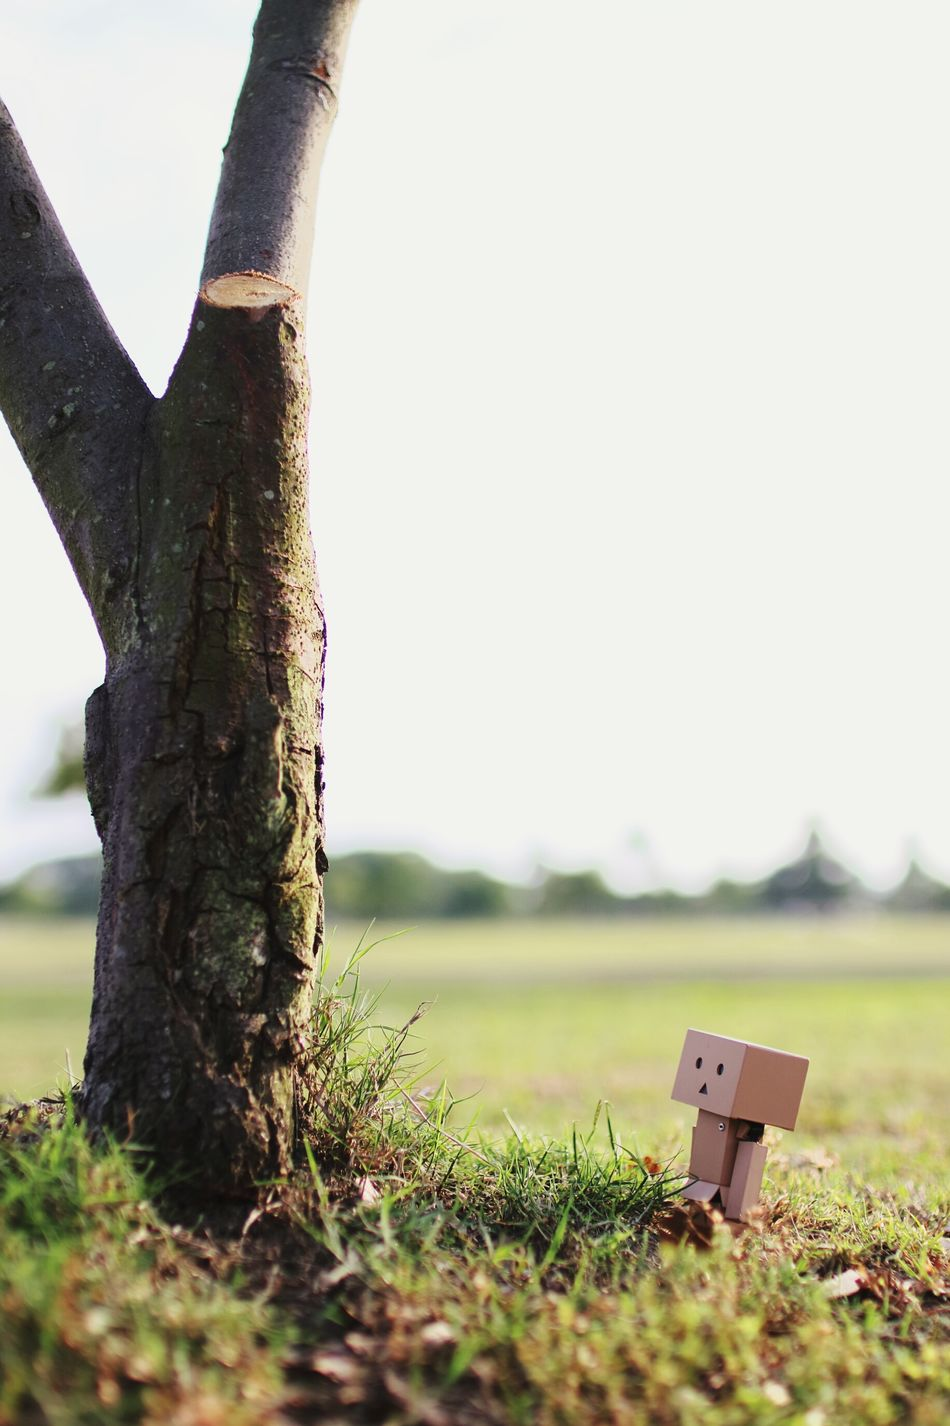 疲れた~。 Danbo EyeEm Gallery Cheese! Sky And Trees Outdoors Park Taking Photos Tree